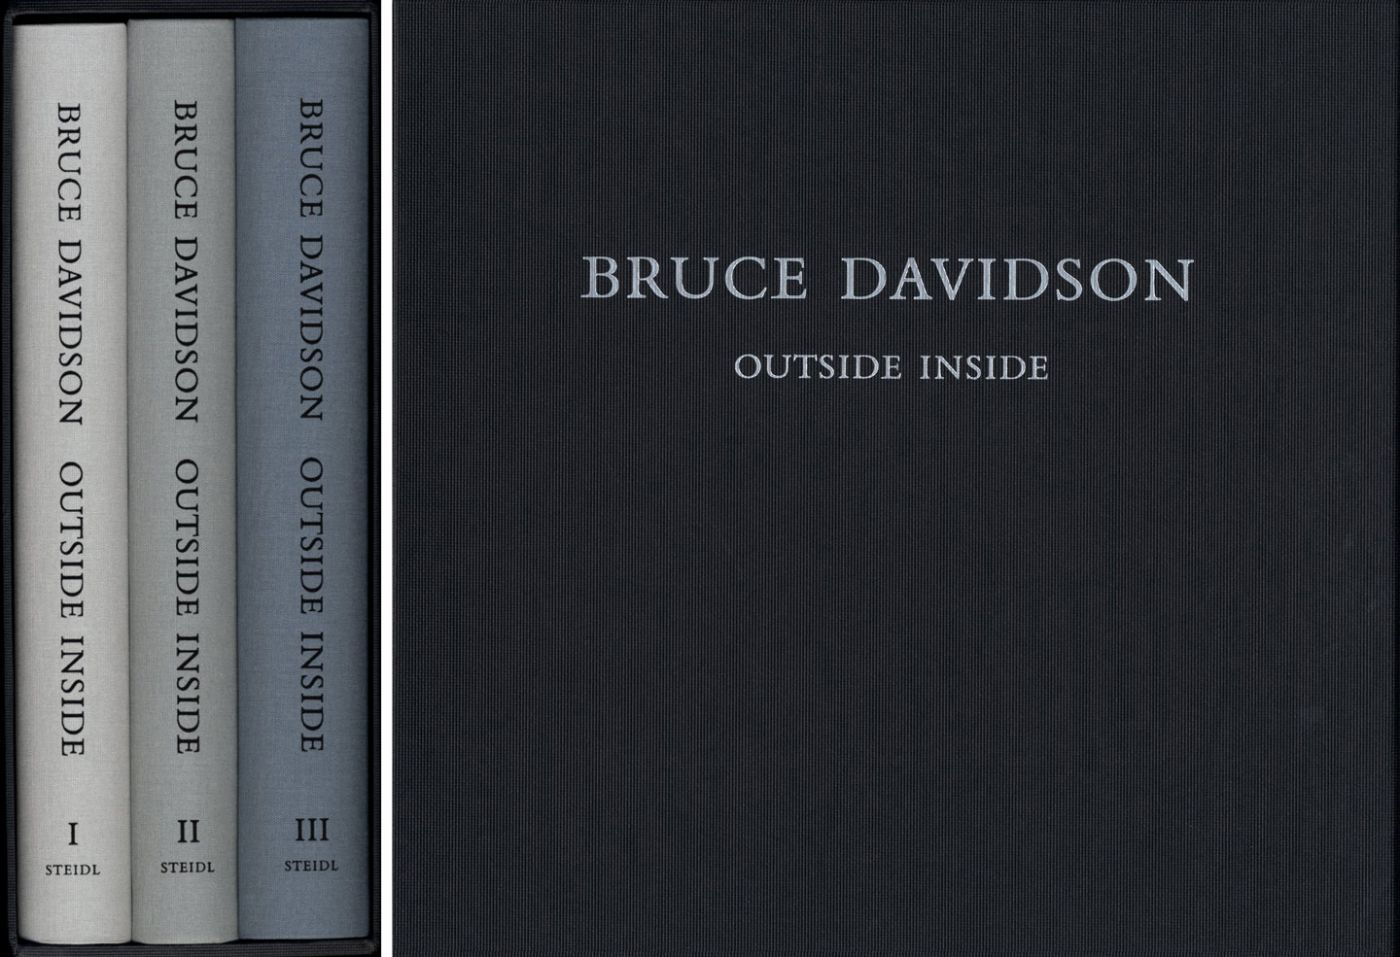 Bruce Davidson: Outside Inside (Three Volumes)